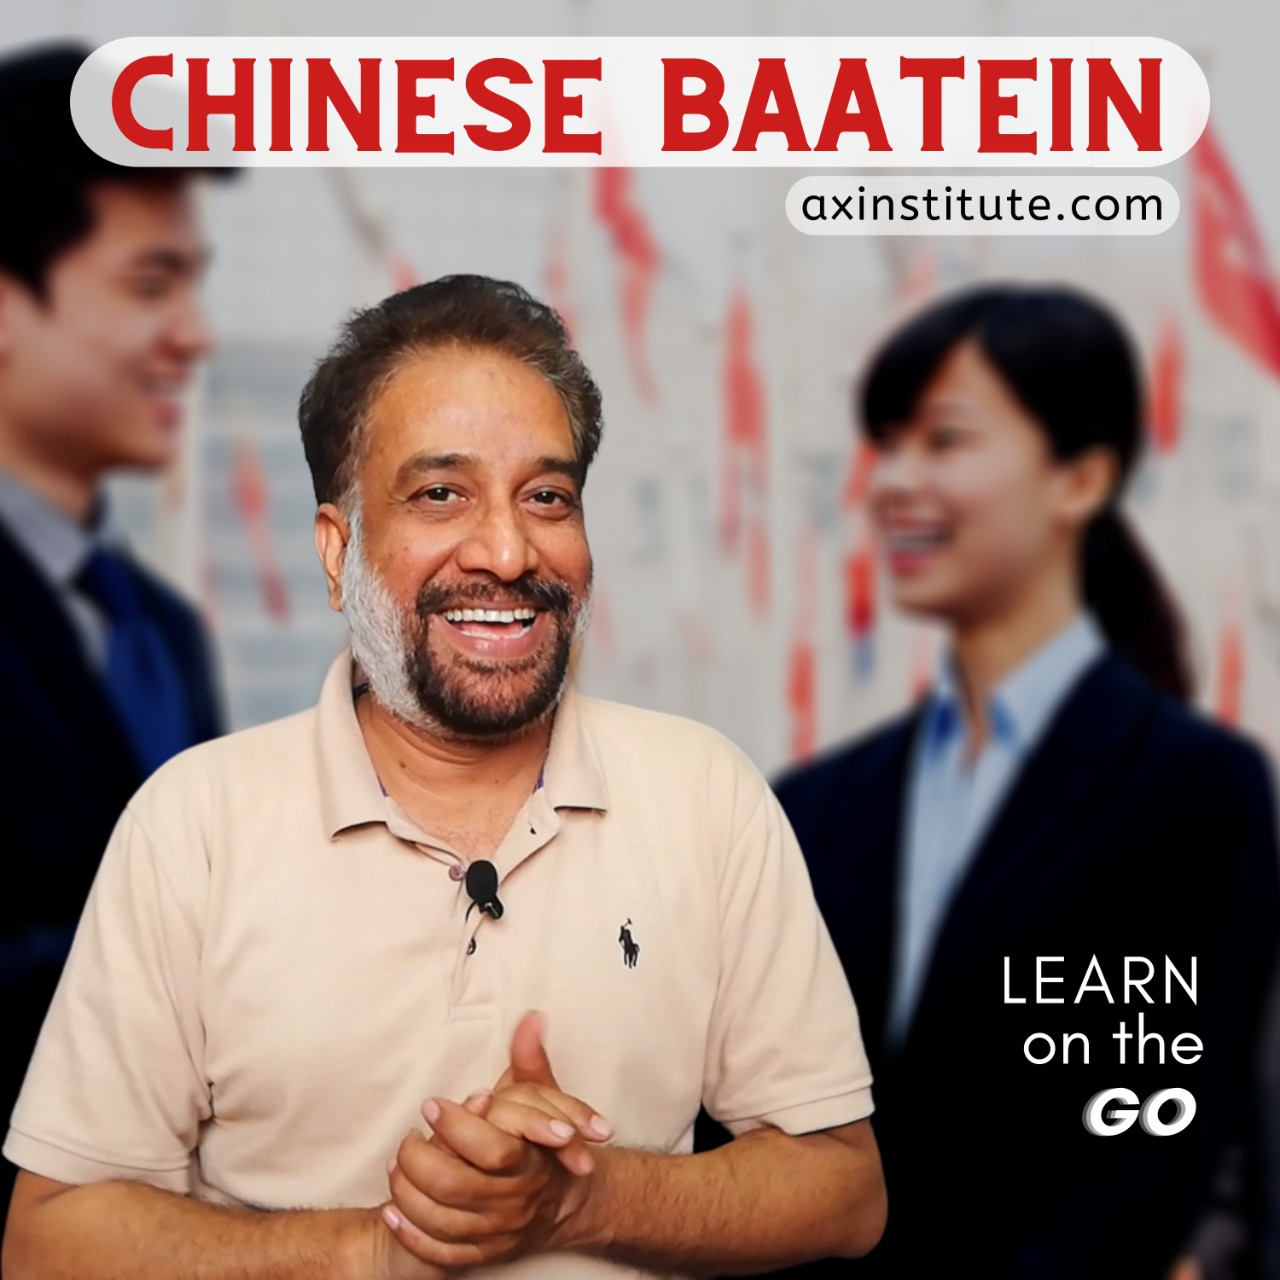 Chinese Baatein